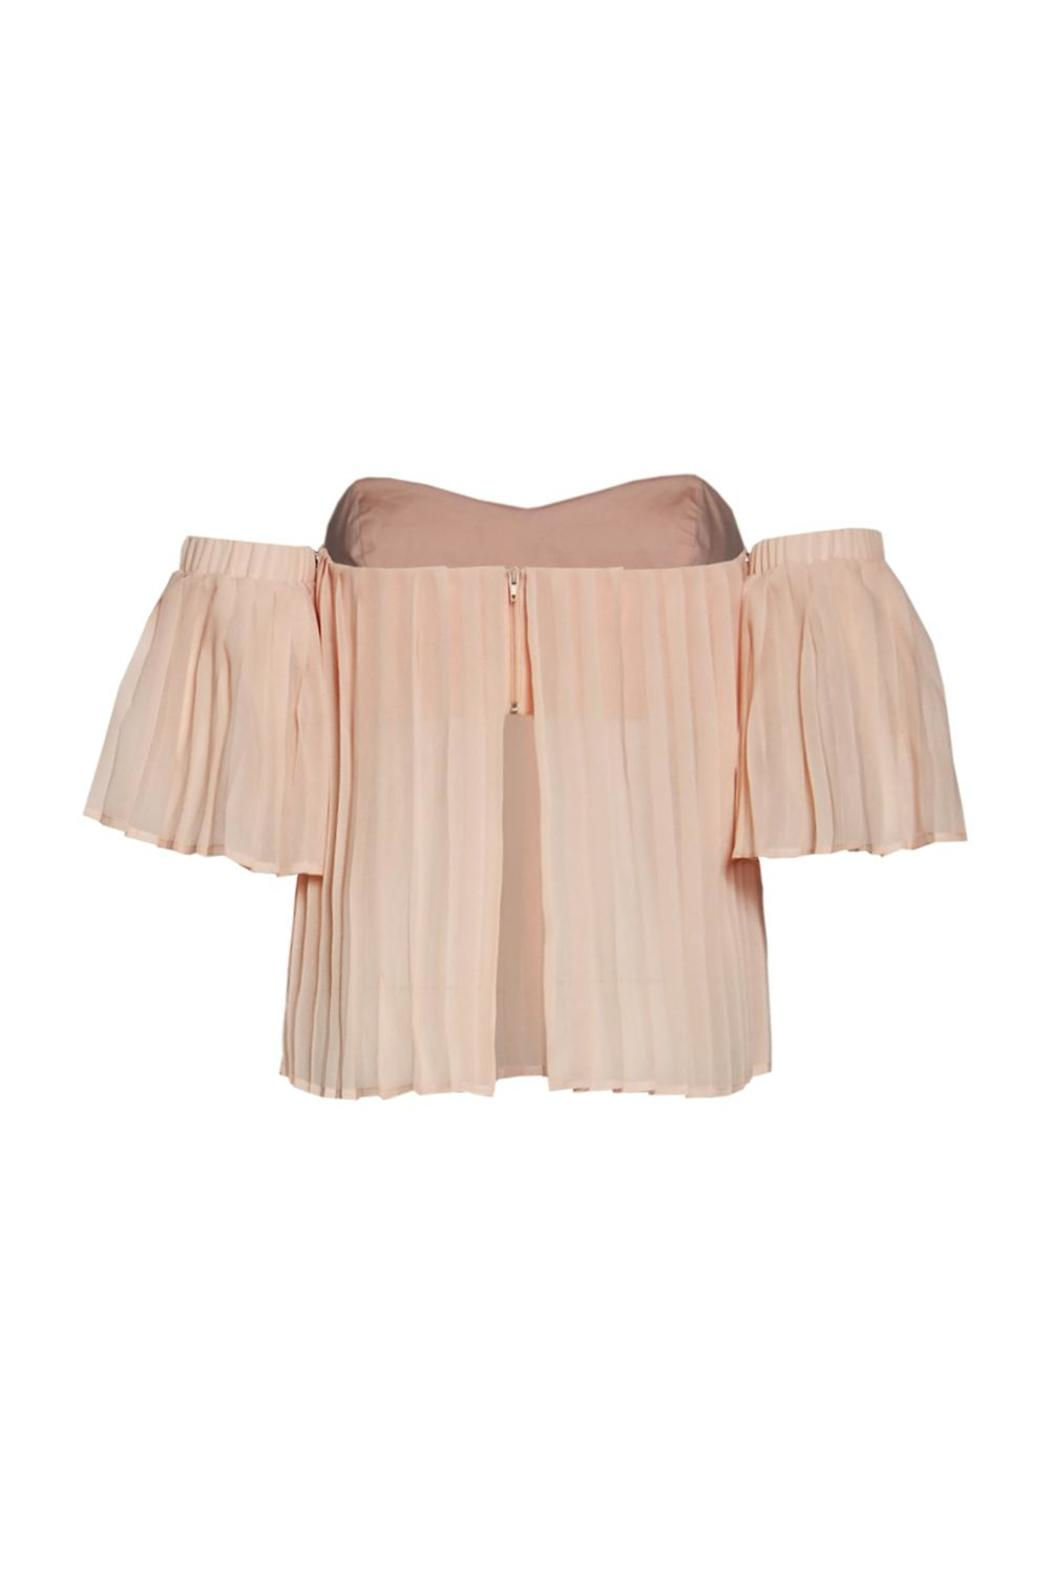 Renamed Apparel Pleated Off-Shoulder Top - Front Full Image